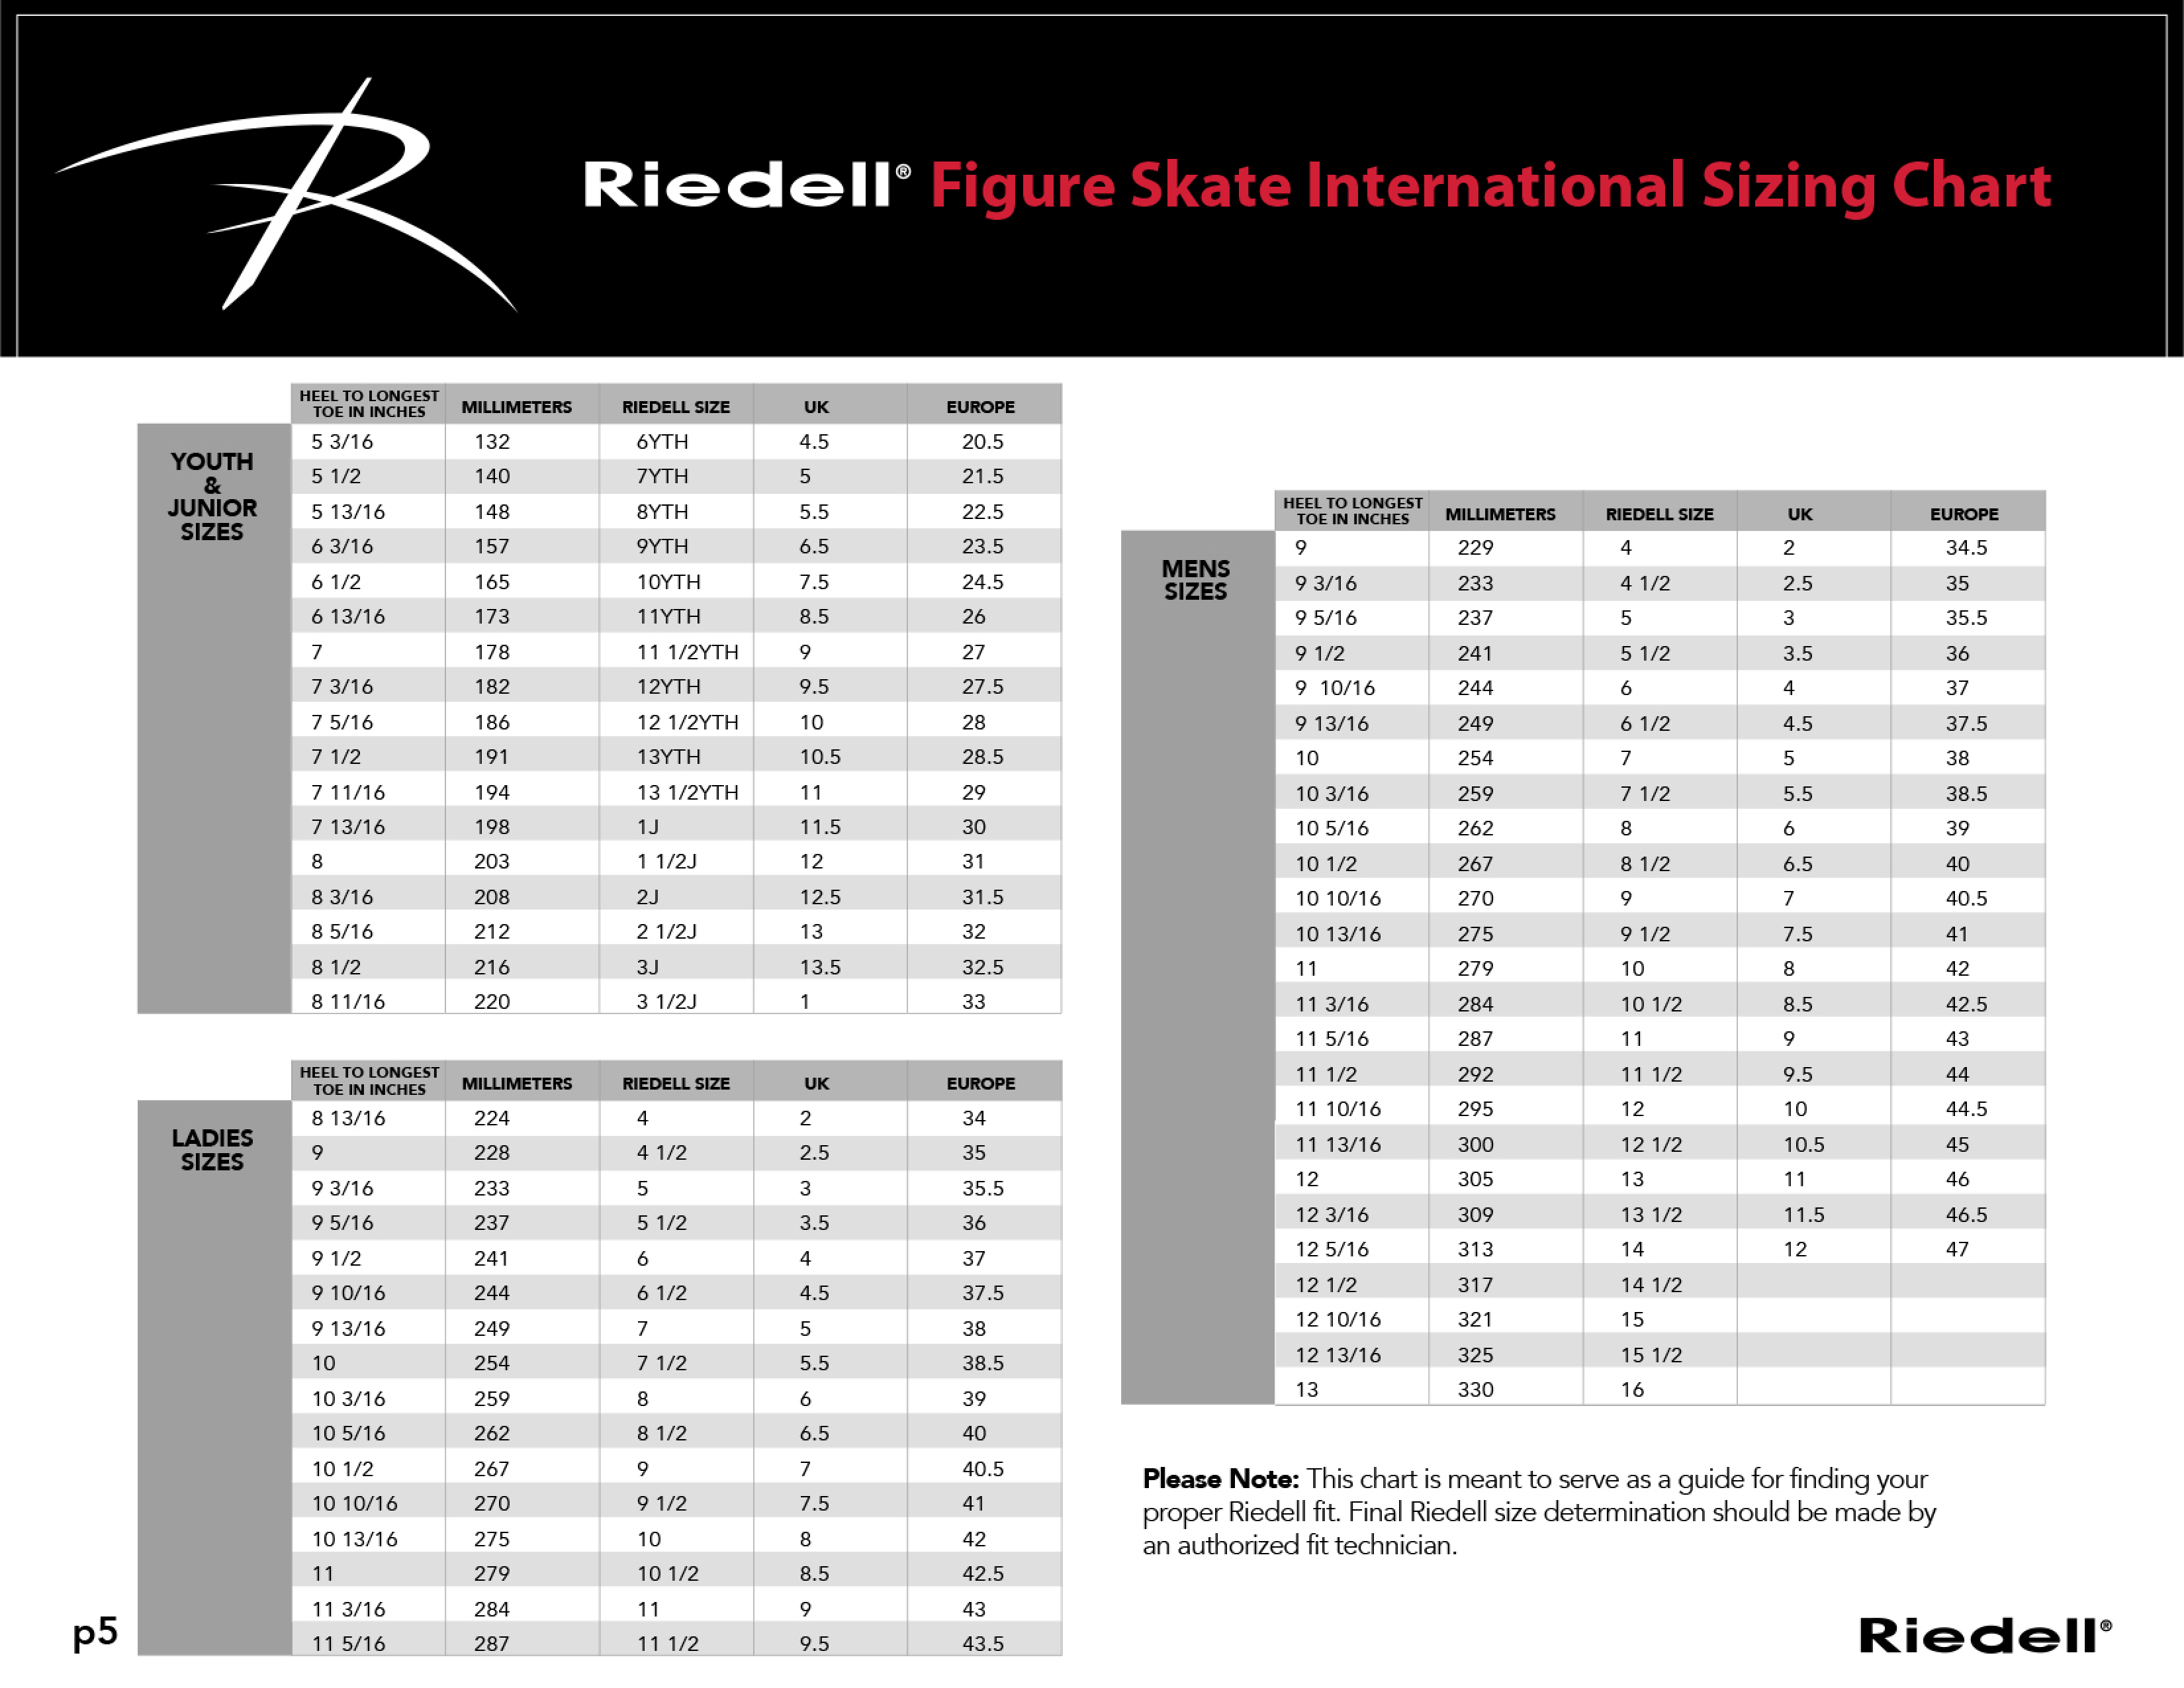 riedell-roller-sizing-guide-high-top-boots-5.jpg